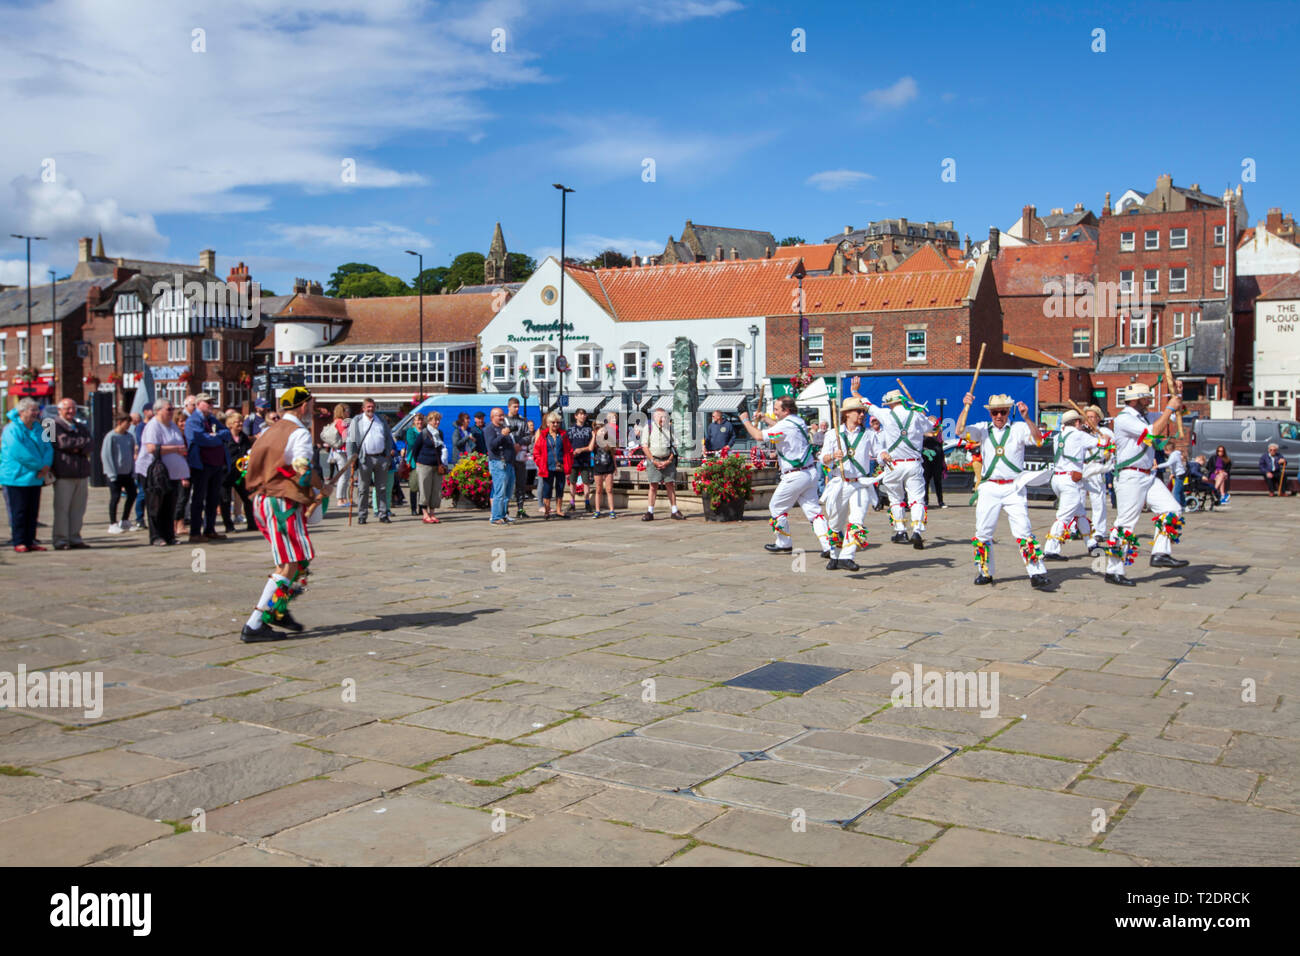 celebrations and dancing on the streets at Whitby Folk week 2018, North Yorkshire coast, England - Stock Image